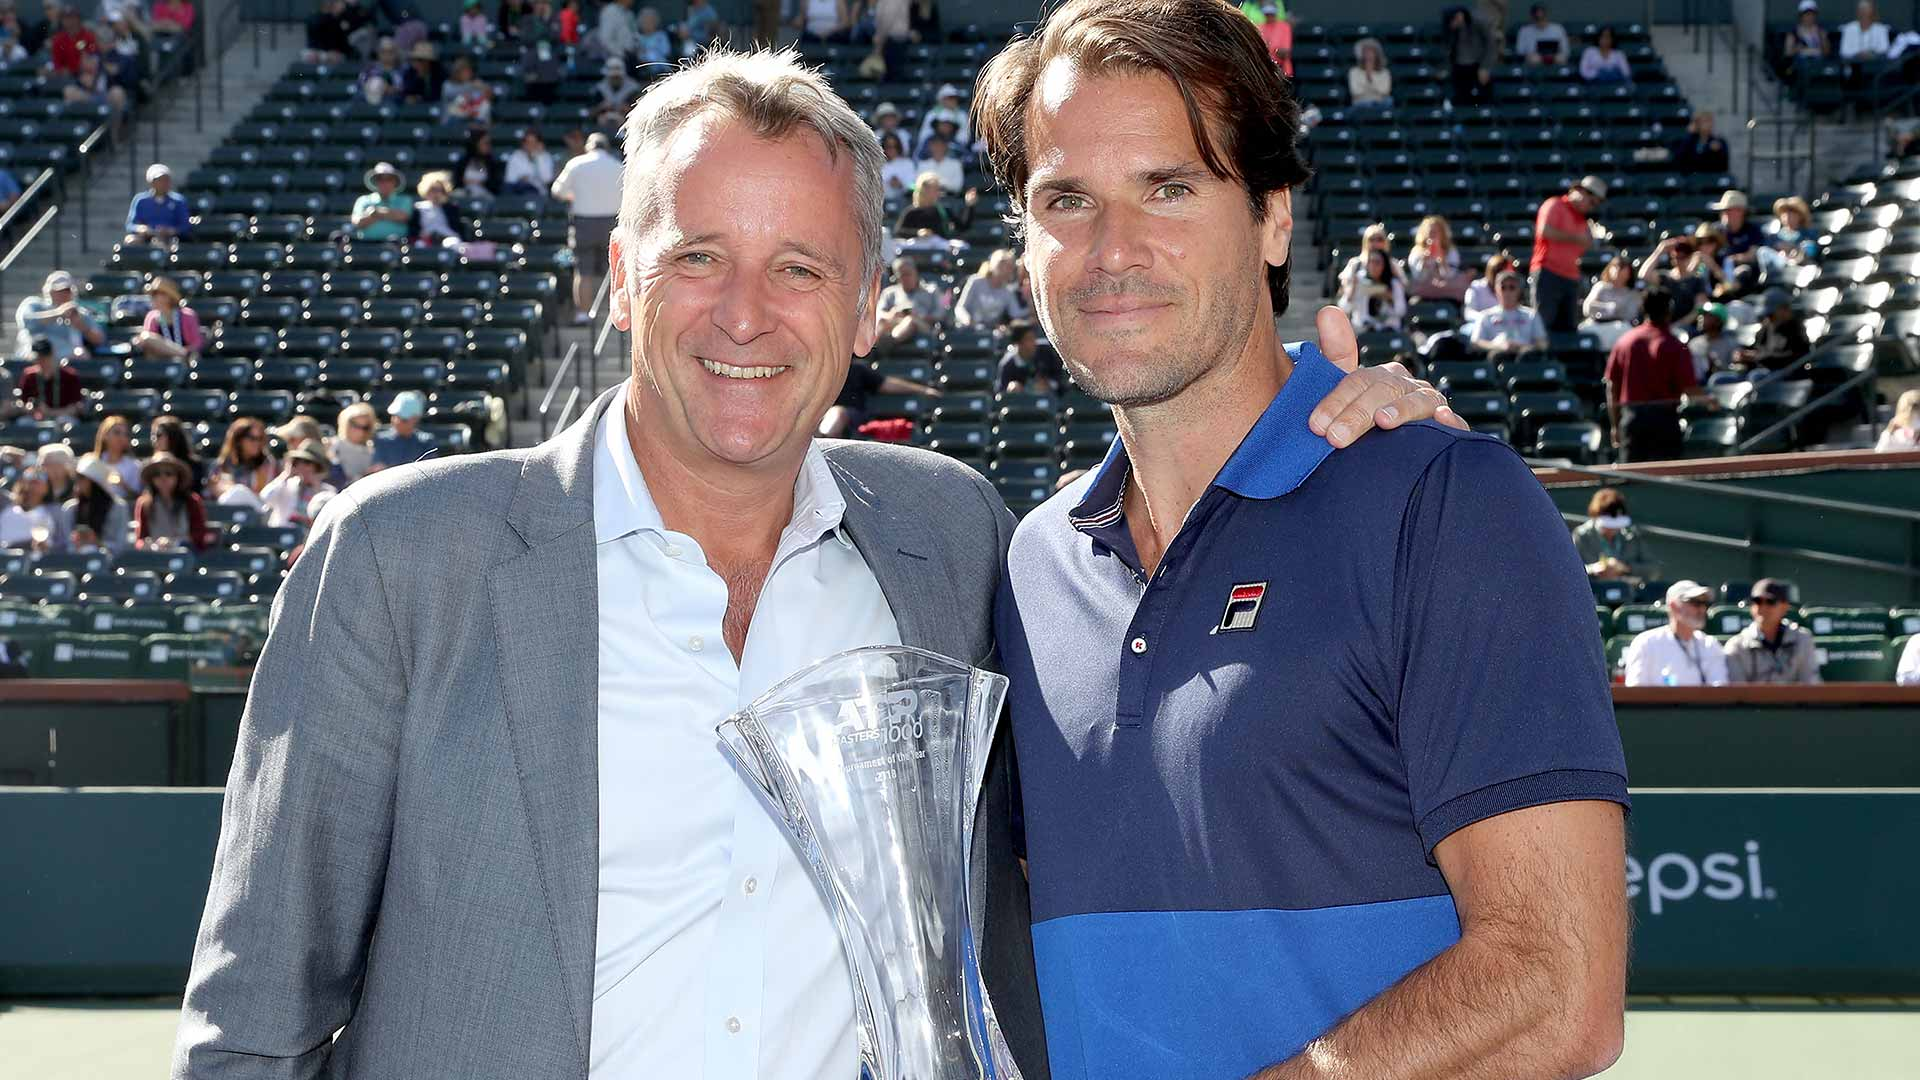 ATP Executive Chairman & President <a href='https://www.atptour.com/en/players/chris-kermode/k007/overview'>Chris Kermode</a> presents <a href='https://www.atptour.com/en/tournaments/indian-wells/404/overview'>BNP Paribas Open</a> Tournament Director <a href='https://www.atptour.com/en/players/tommy-haas/h355/overview'>Tommy Haas</a> with the ATP Masters 1000 Tournament of the Year trophy in the 2018 ATP Awards.